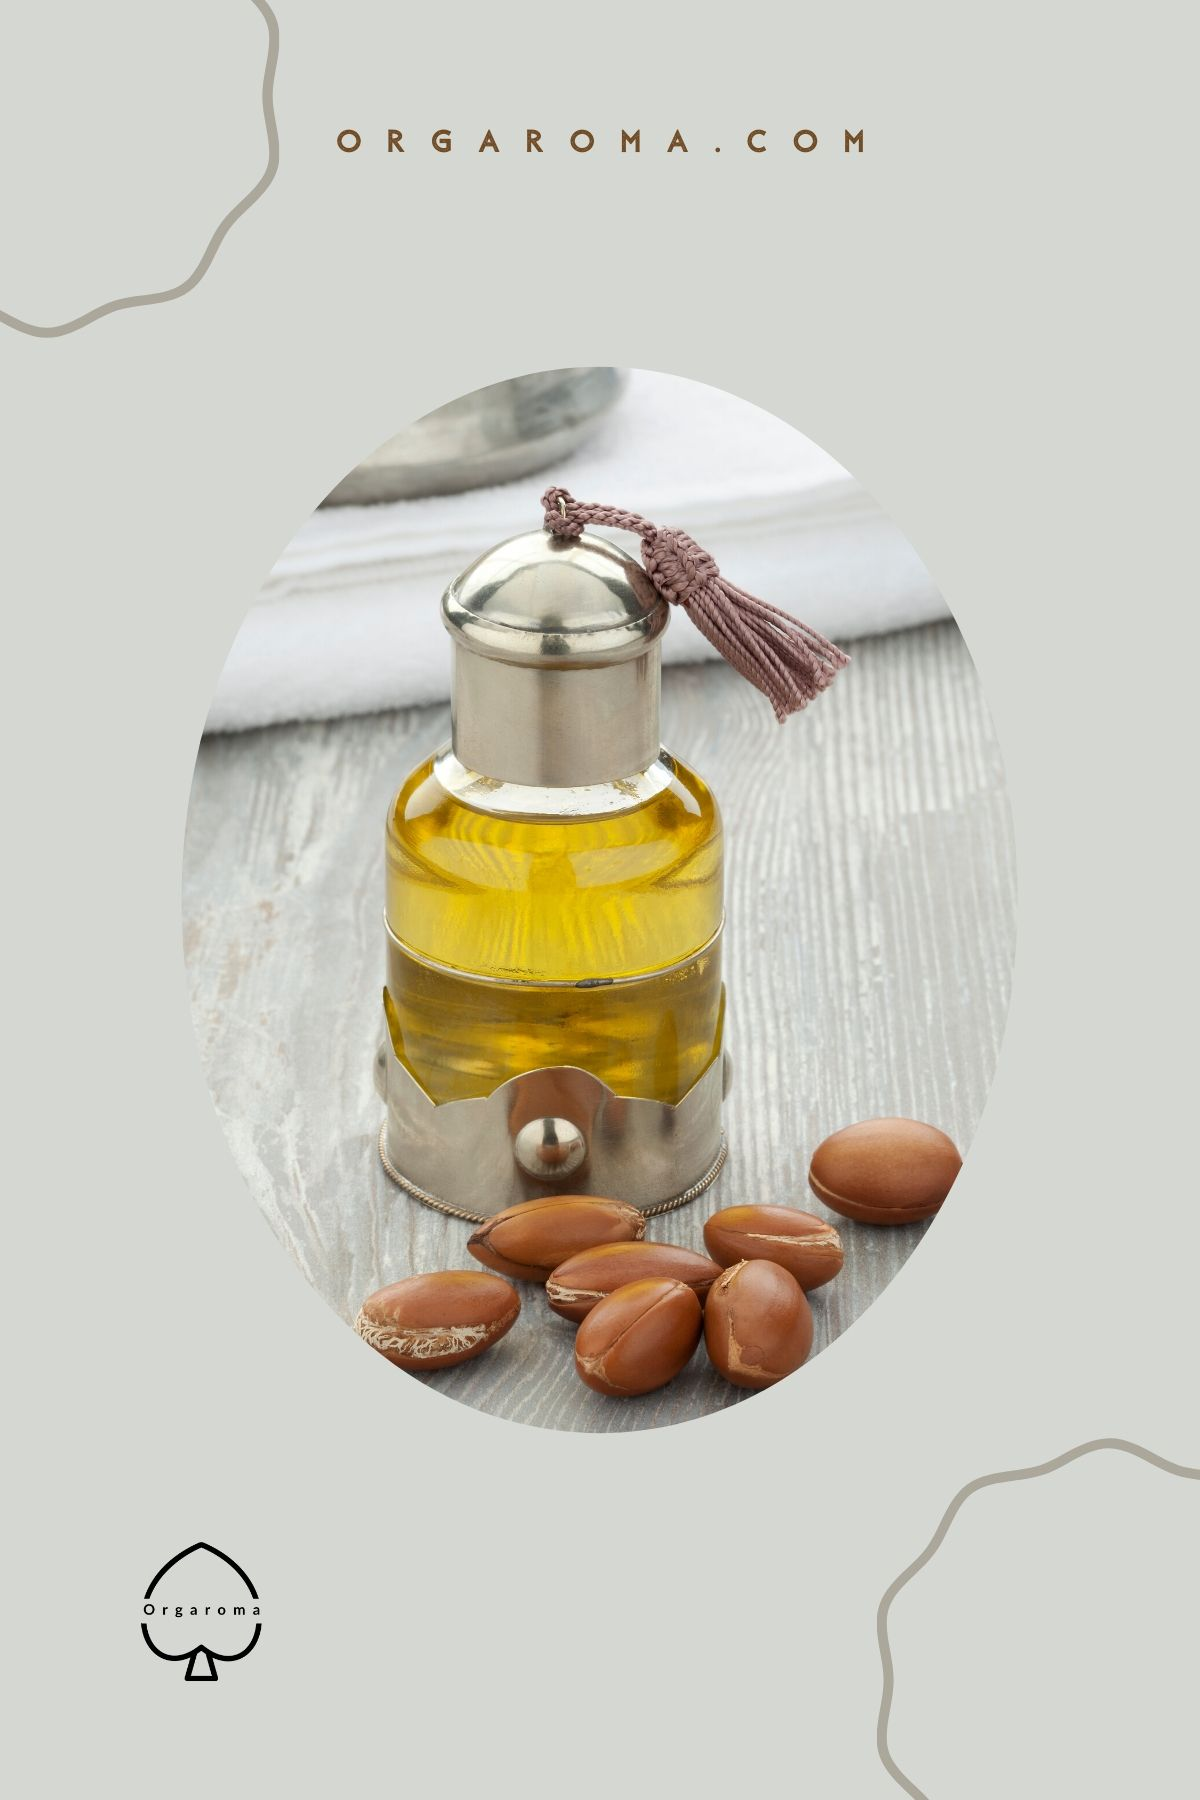 Read more about the article why argan oil is good for skin? Benefits and Precautions